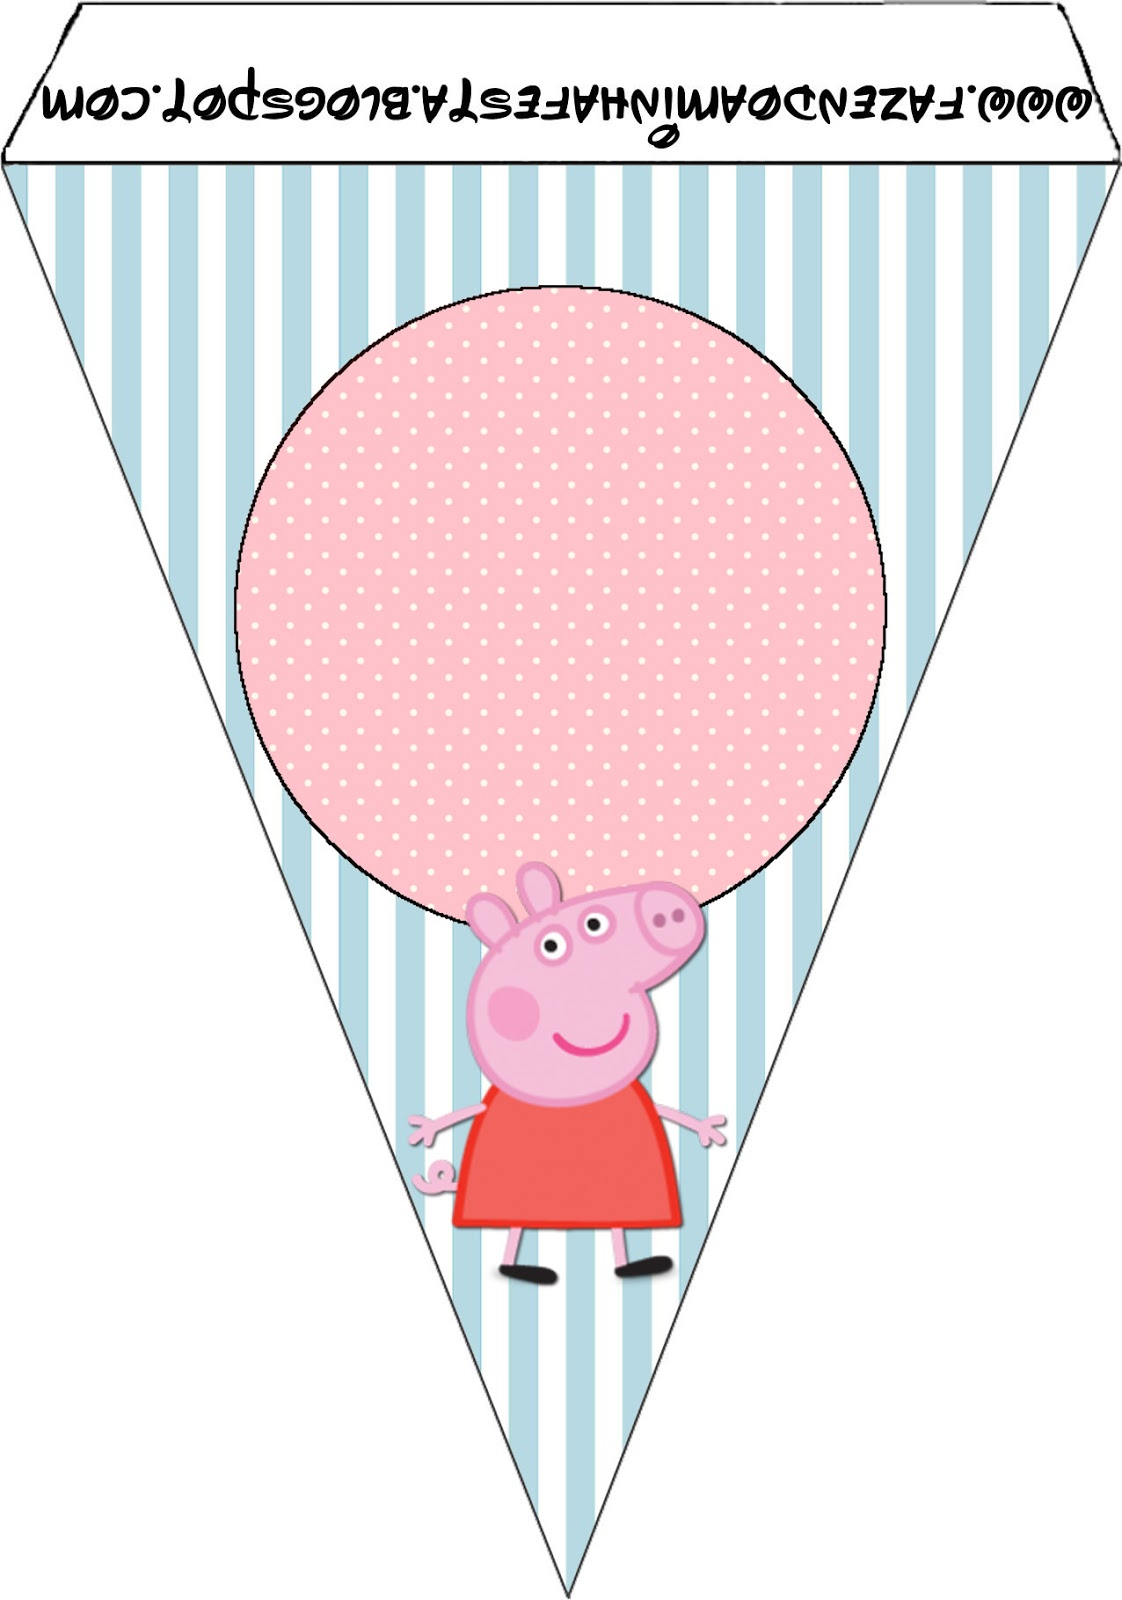 image regarding Peppa Pig Printable known as Peppa Pig: Social gathering Totally free Printables. - Oh My Fiesta! inside english